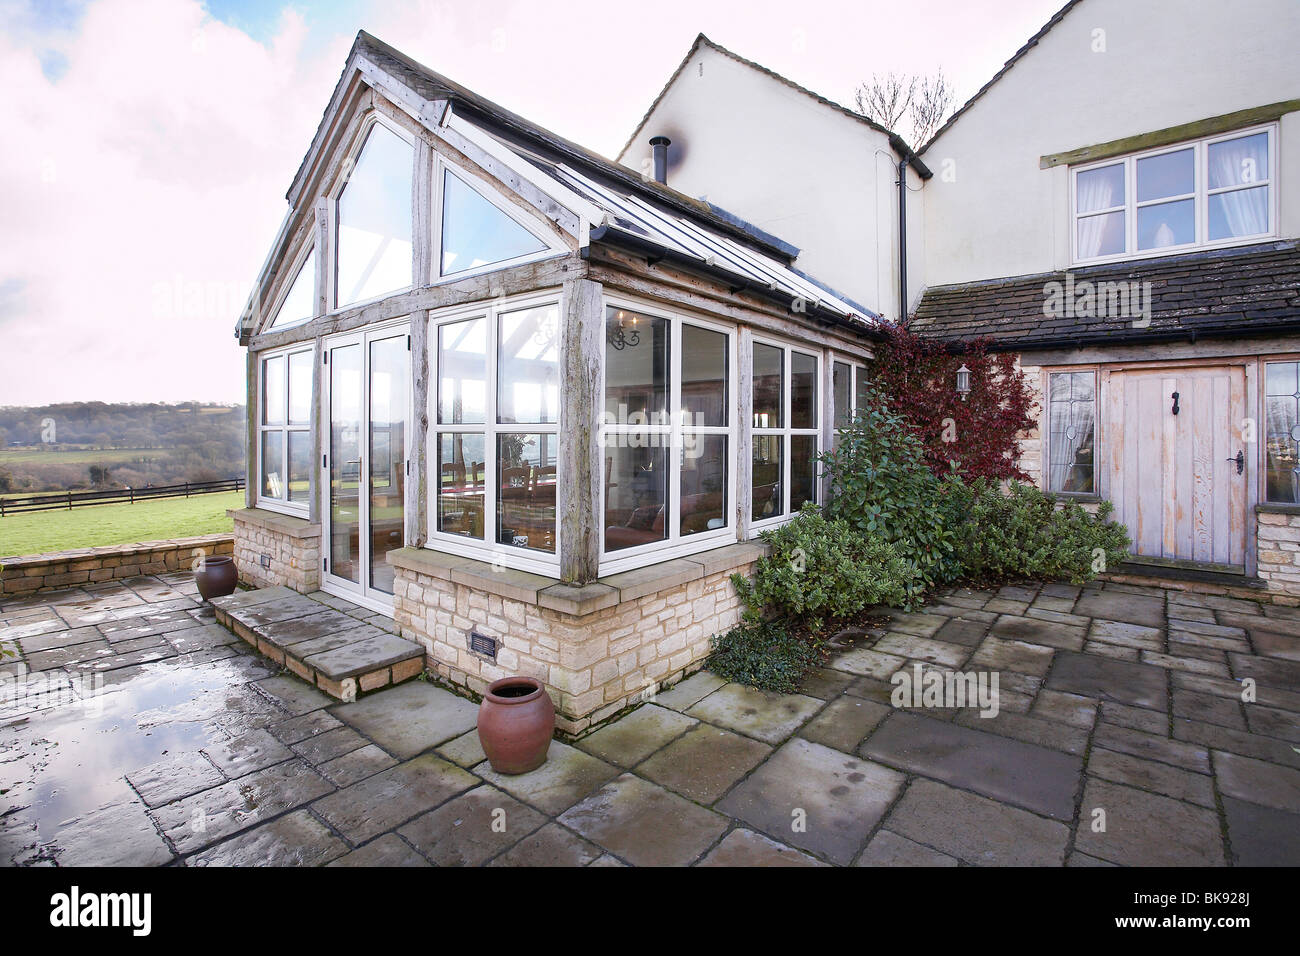 an oak framed orangery type conservatory attached to a house in the